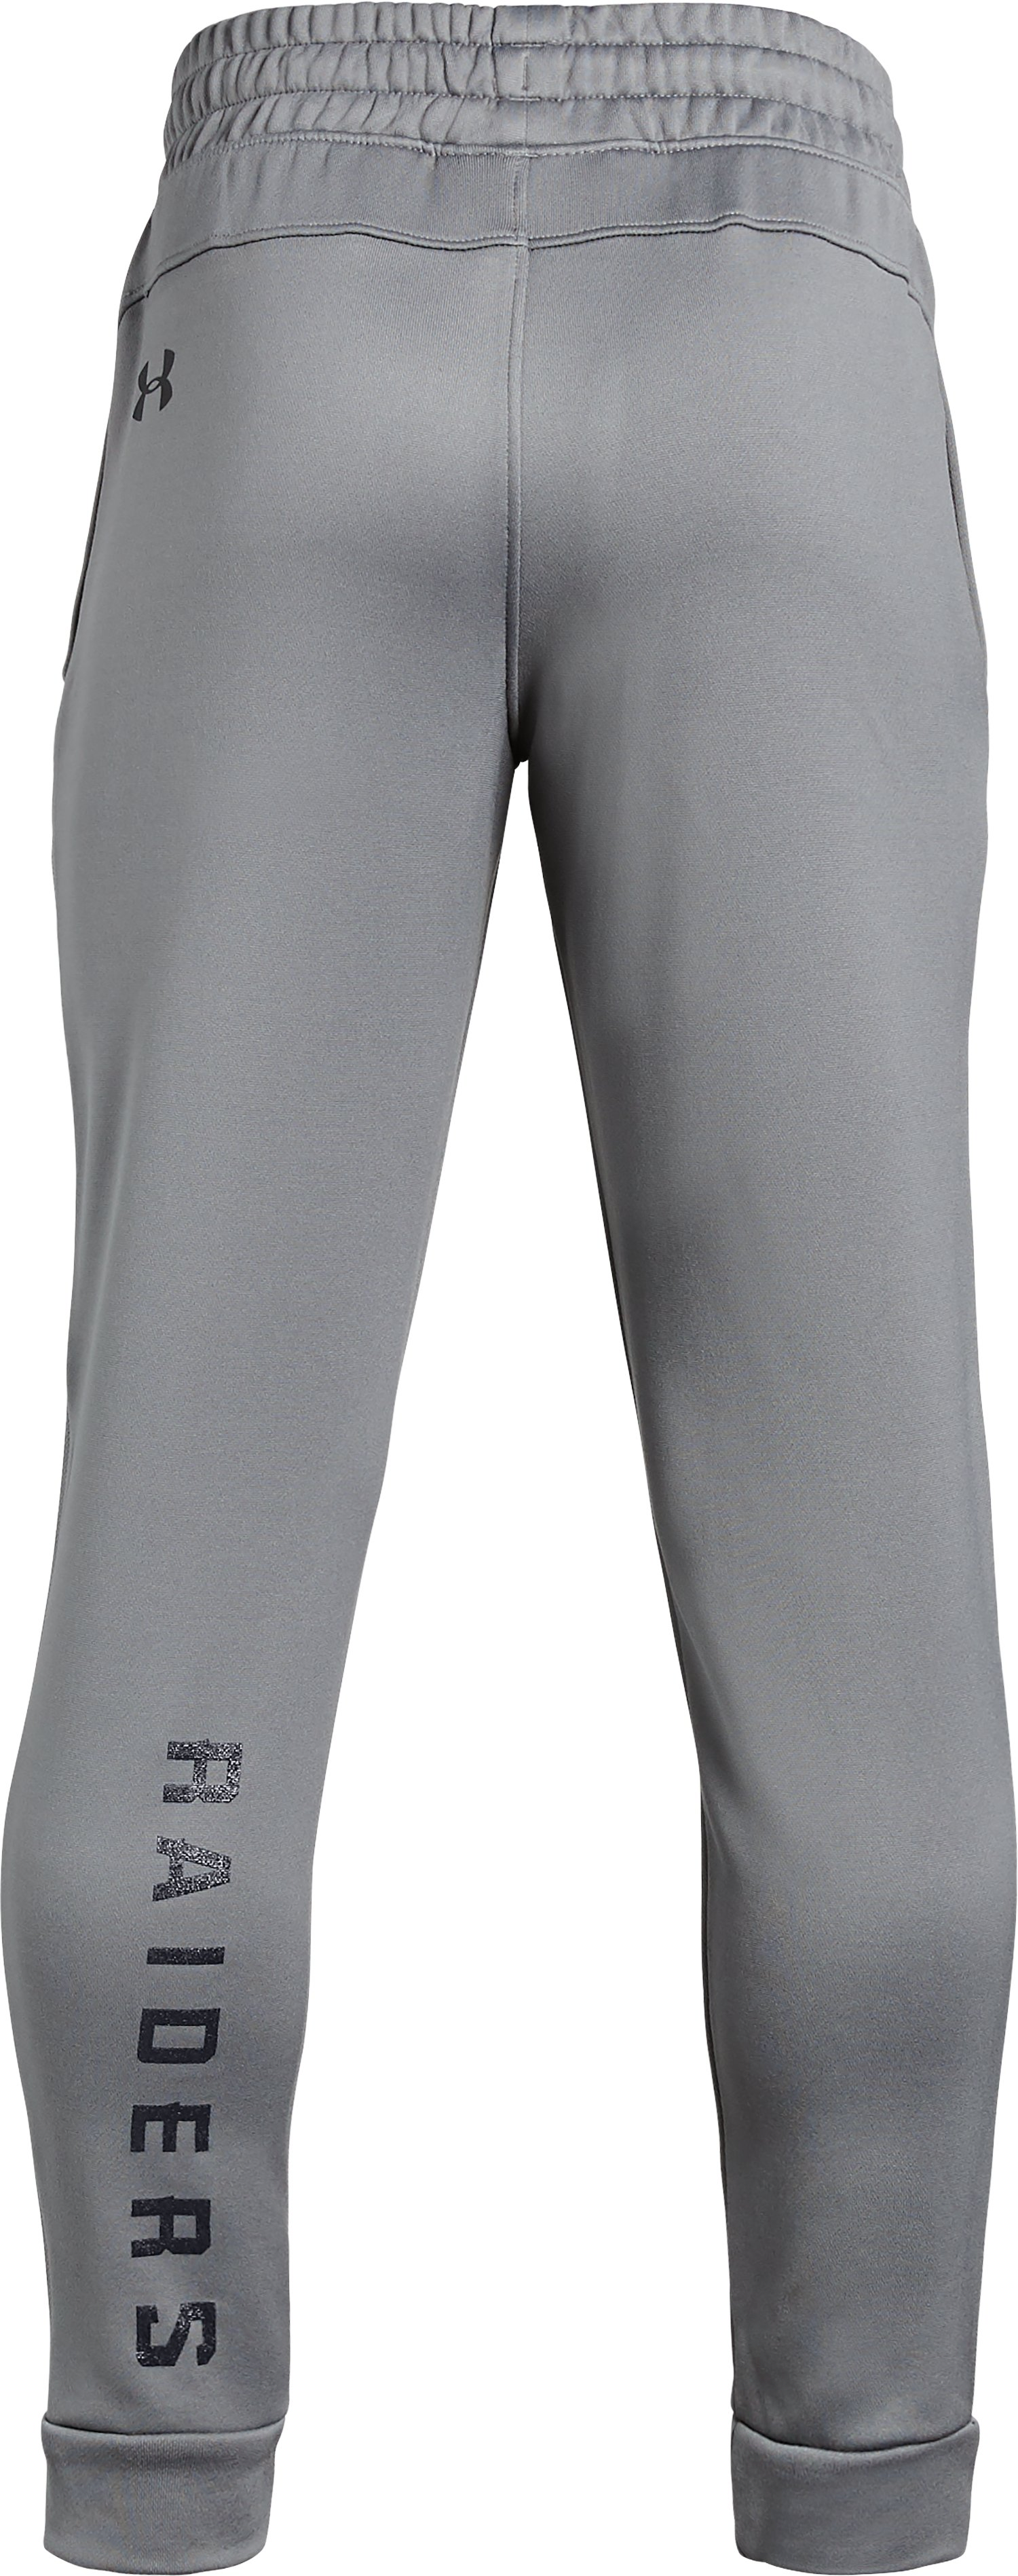 Boys' NFL Combine Authentic UA Tech™ Terry Joggers, NFL_Oakland Raiders_Graphite,